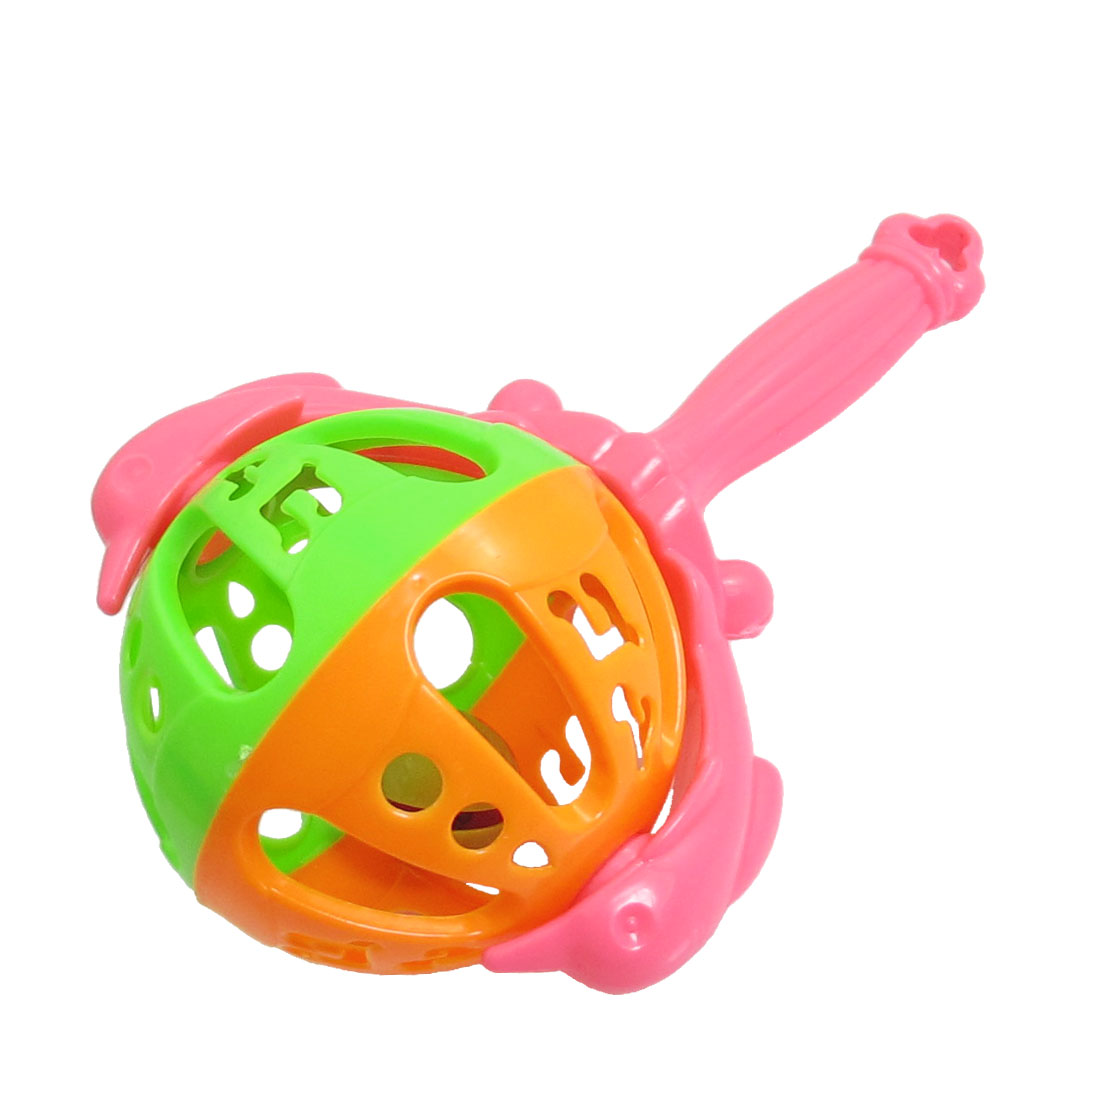 Plastic Pink Handle Shaking Jingle Handbell Toddler Baby Toy